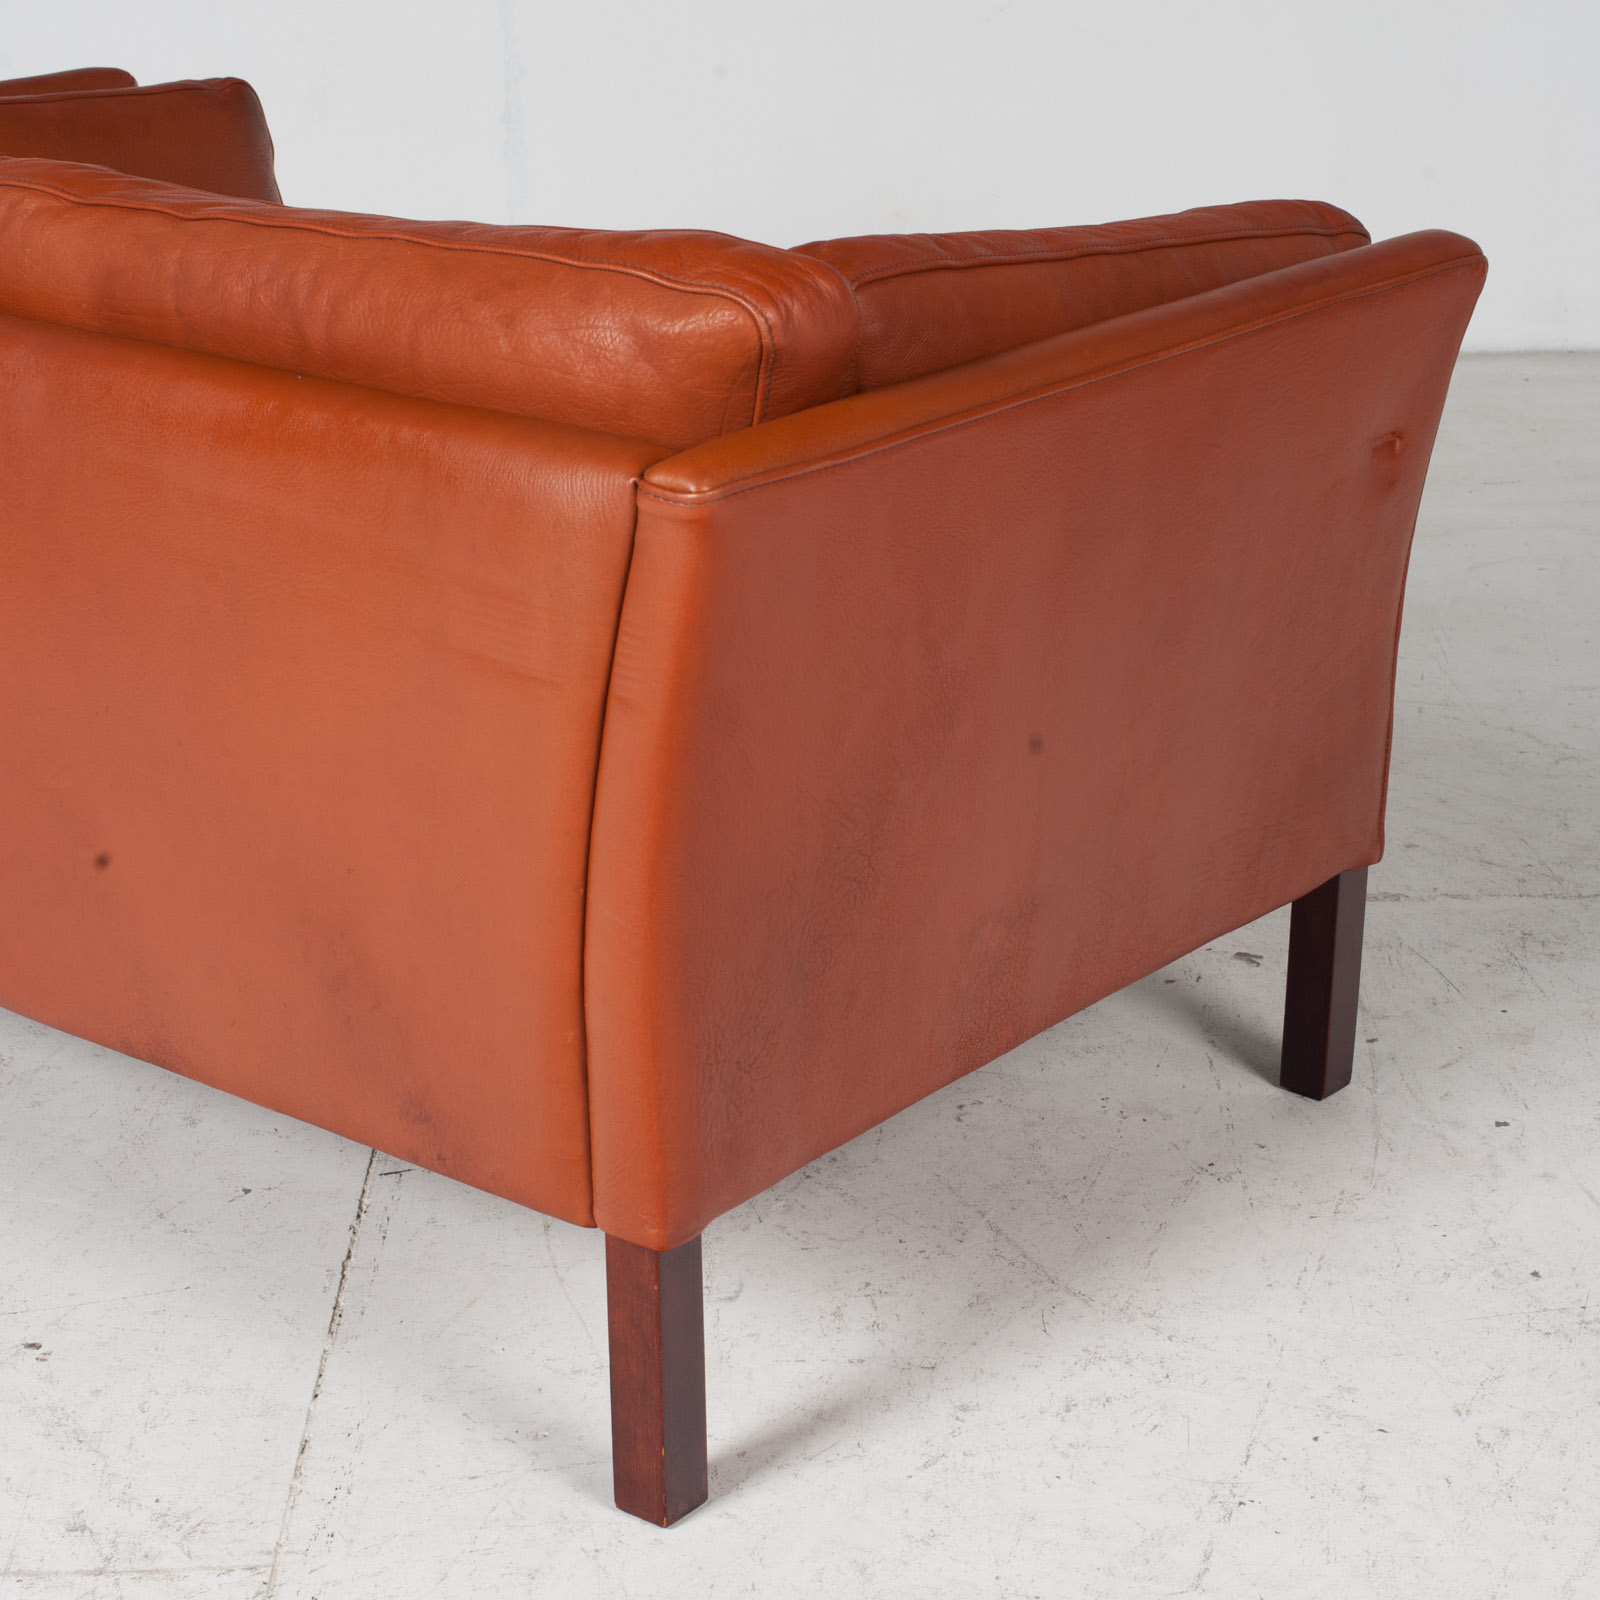 2 Seat Sofa By Stouby In Tan Leather, 1960s, Denmark 8